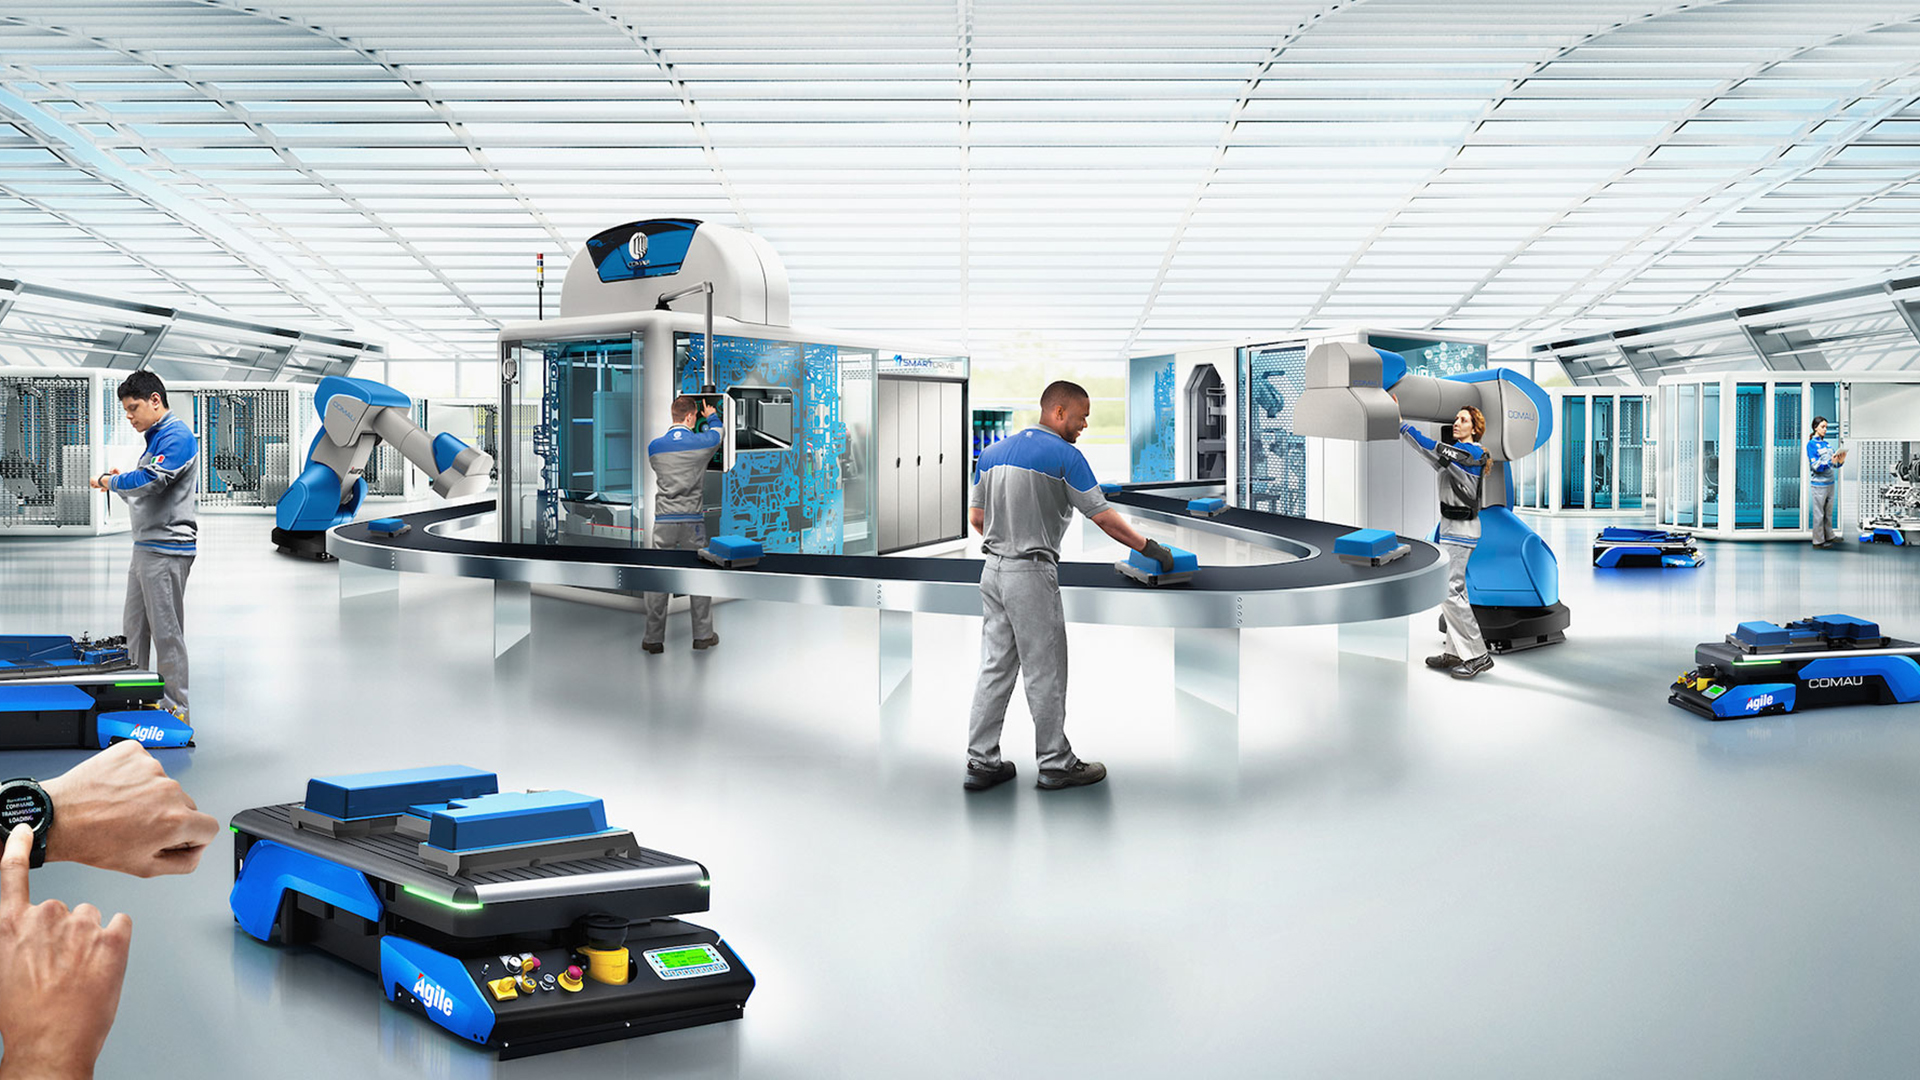 Building the Factory of the Future: Comau's Approach to Industry 4.0